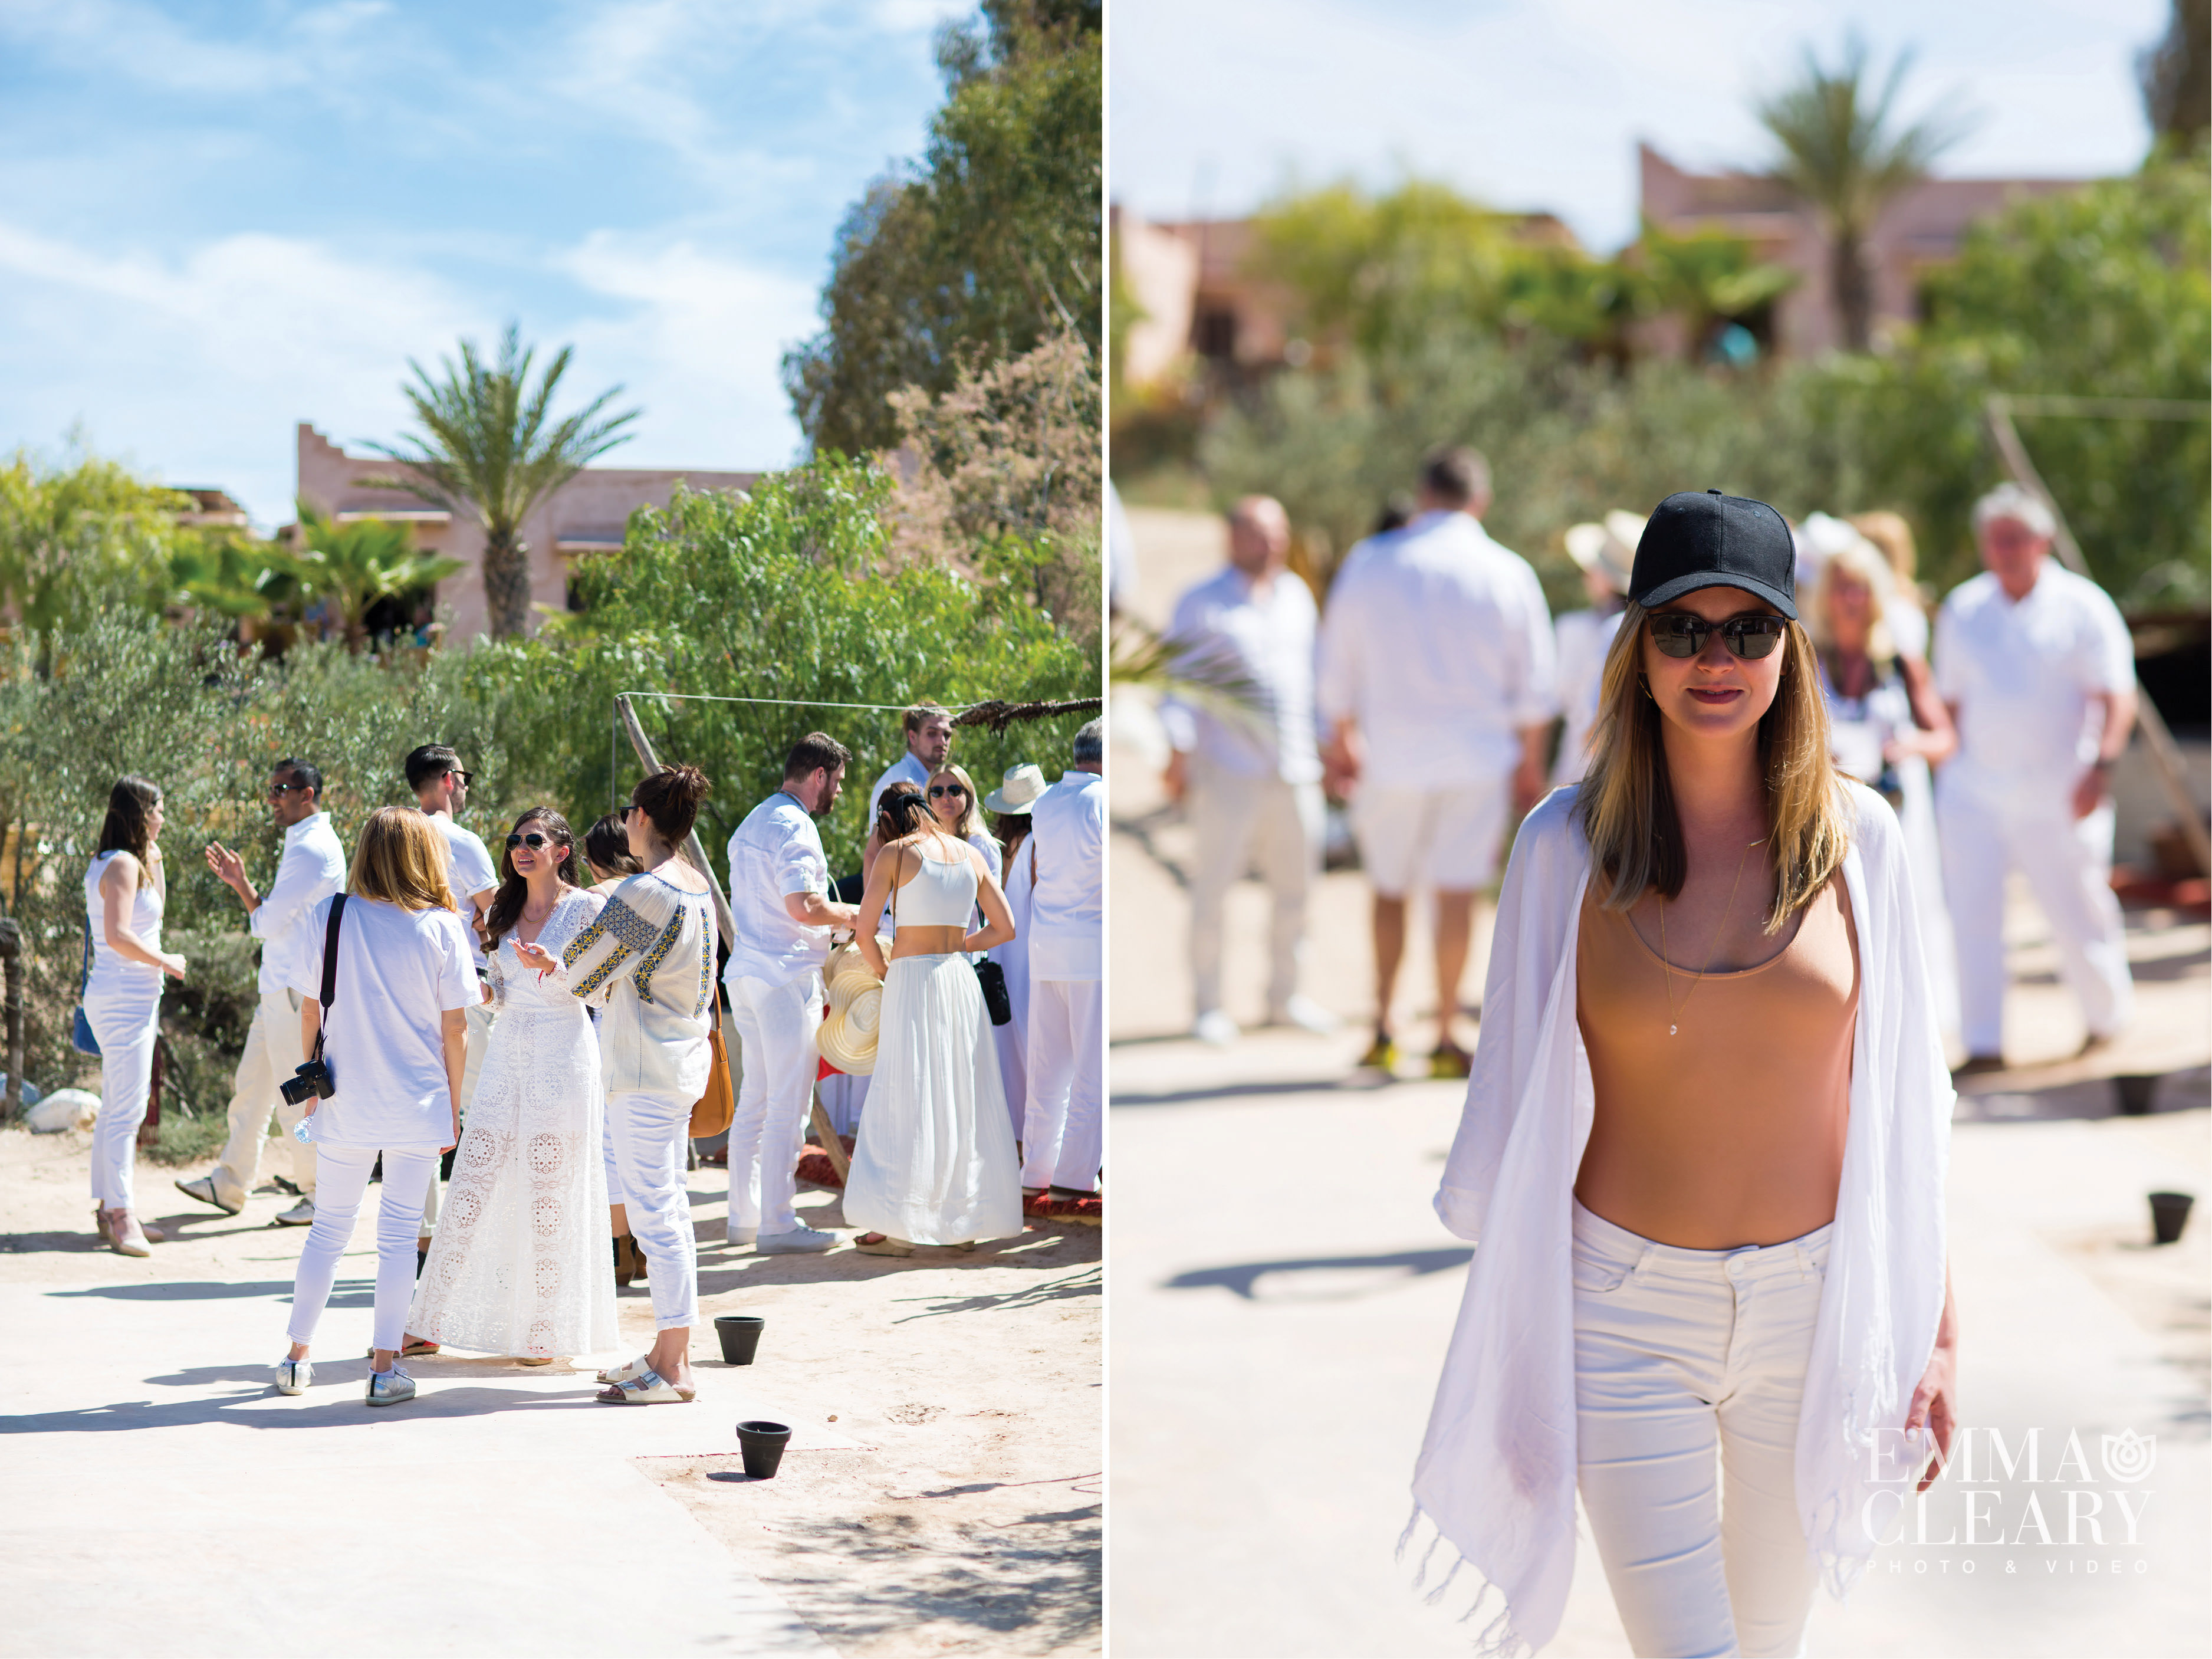 Emma_cleary_photography Destination Wedding Morrocco03